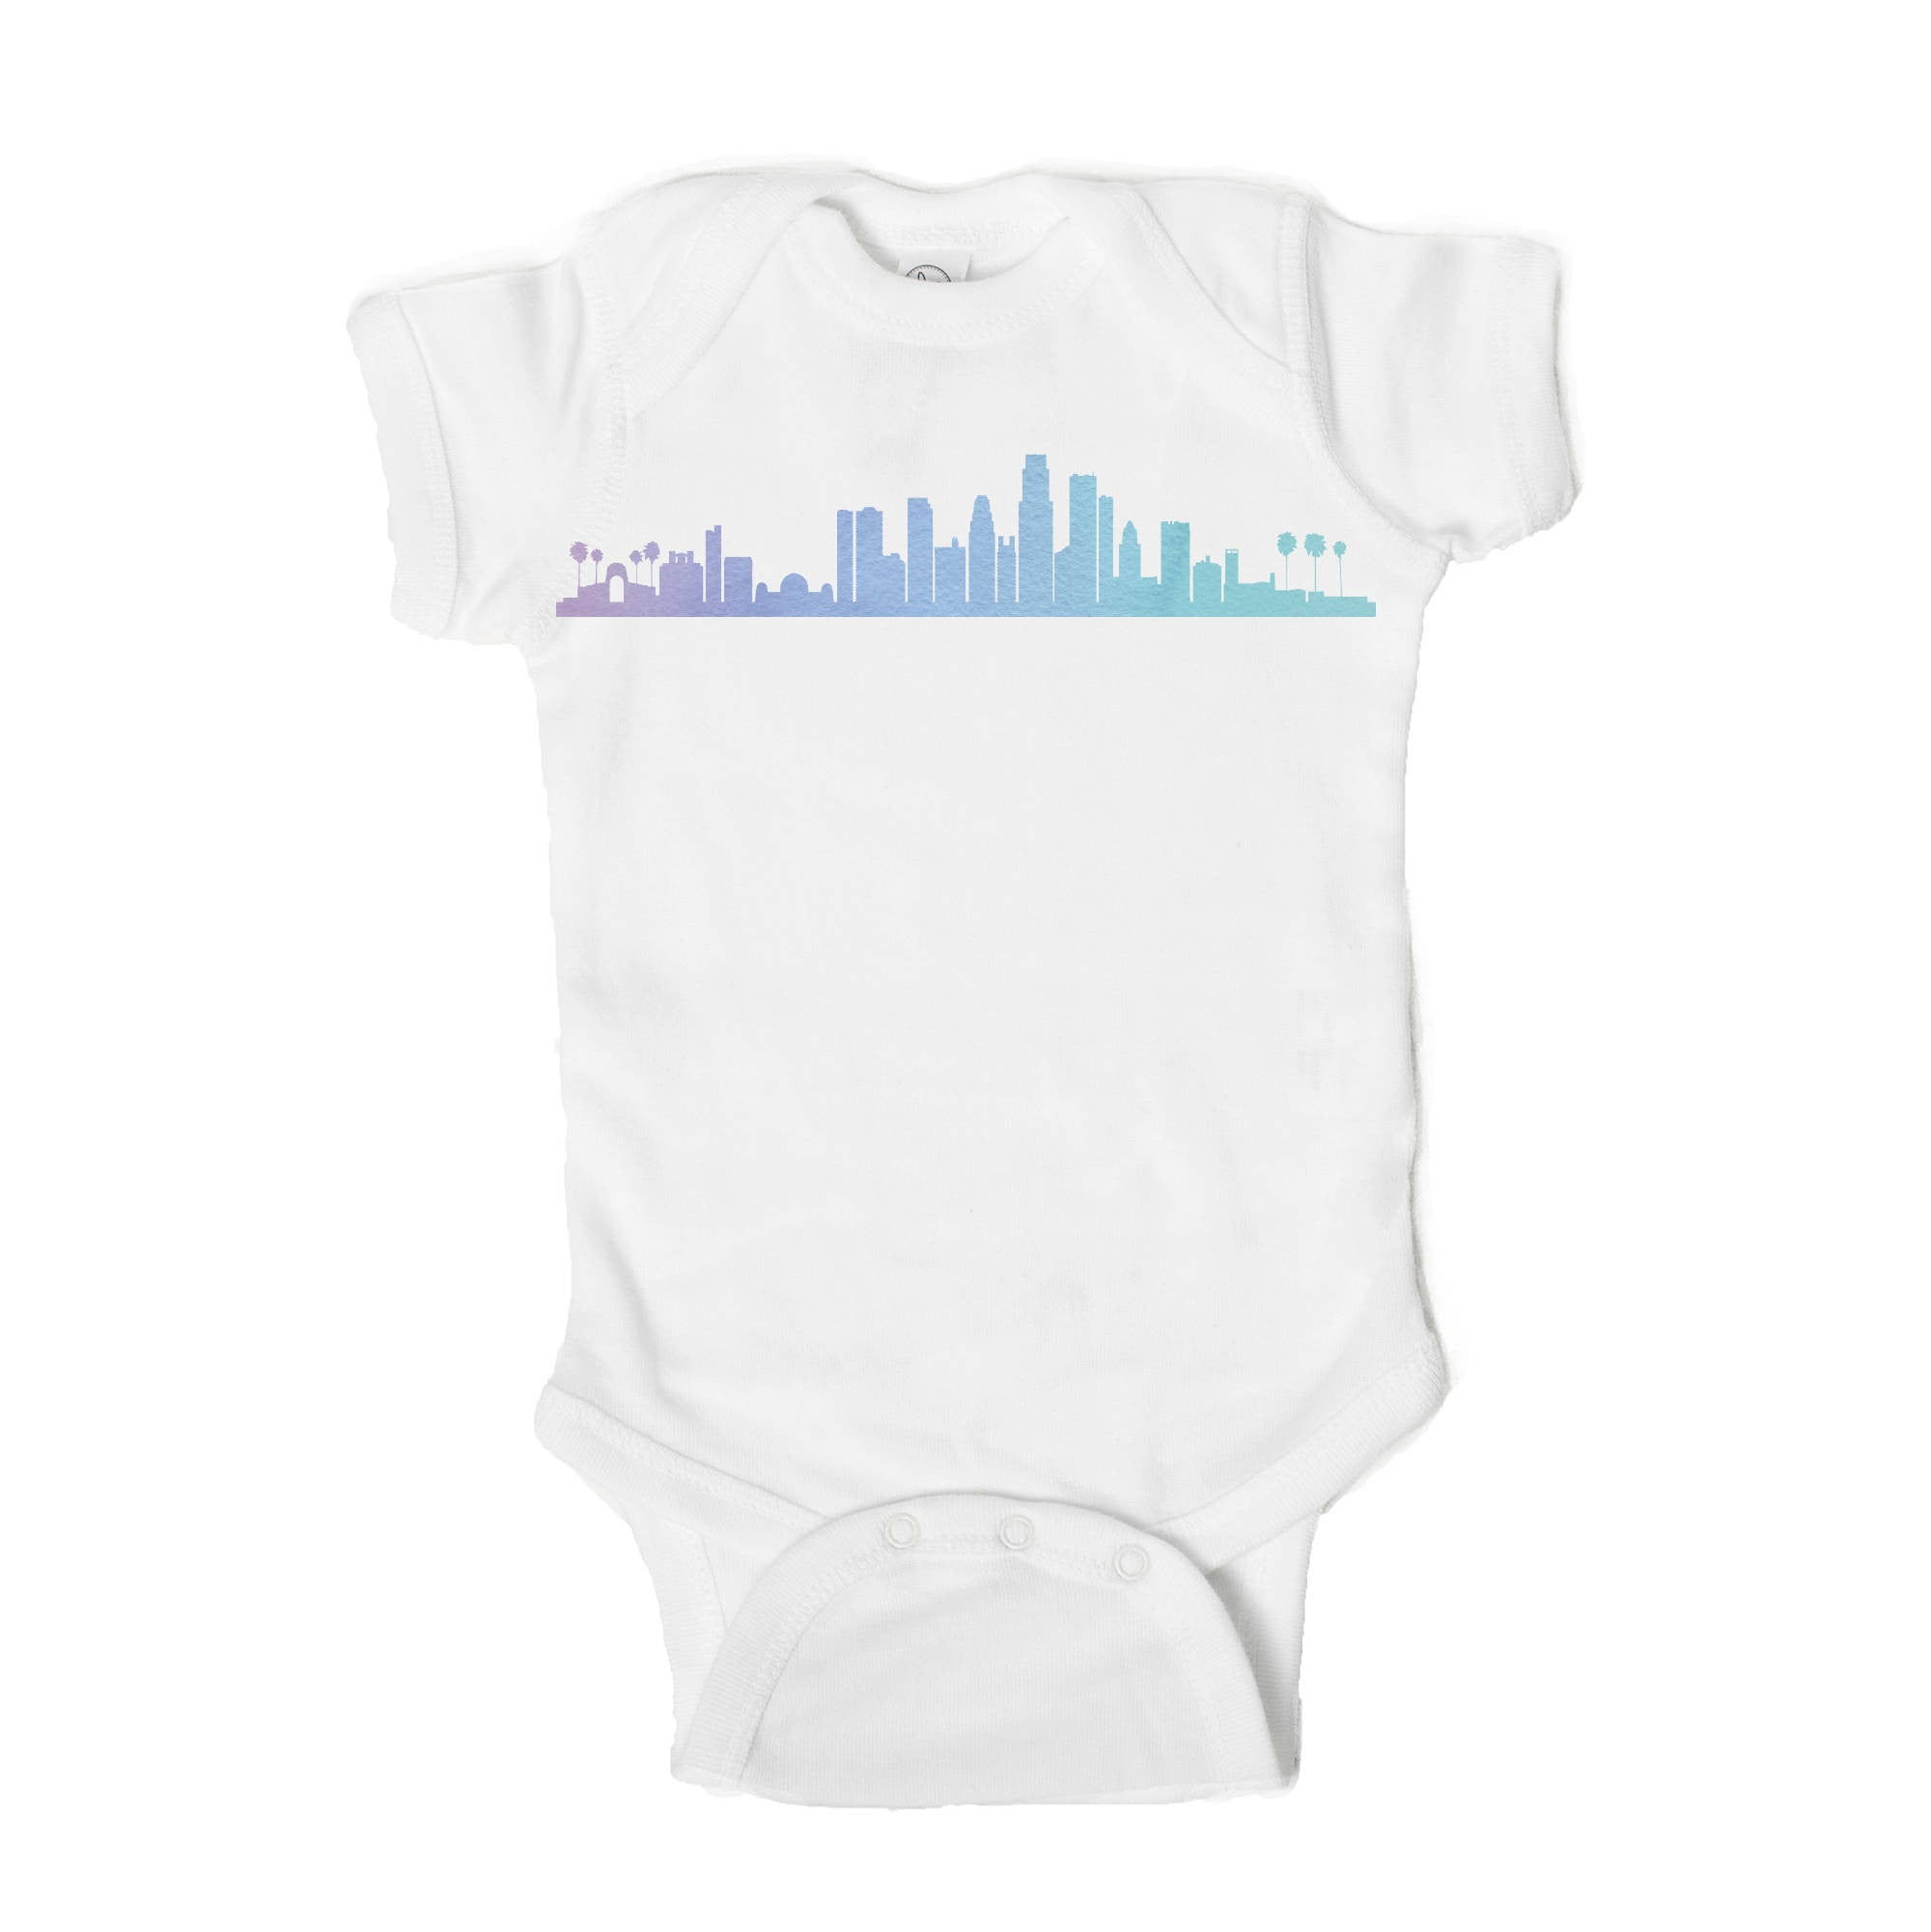 Los Angeles Skyline Baby Onesie - One Strange Bird